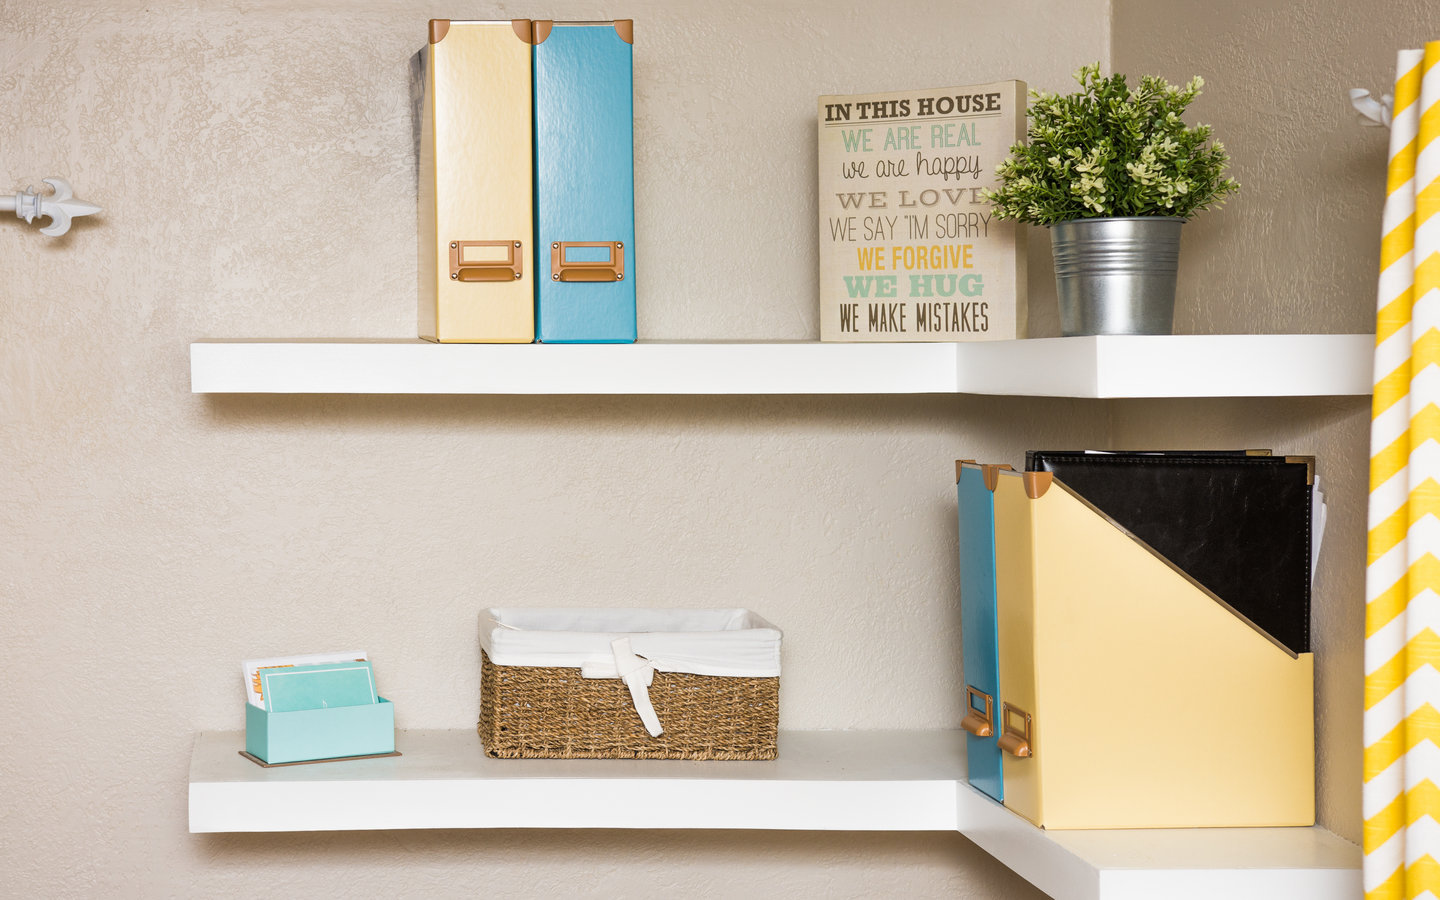 White Floating Shelves as storage ideas for small spaces